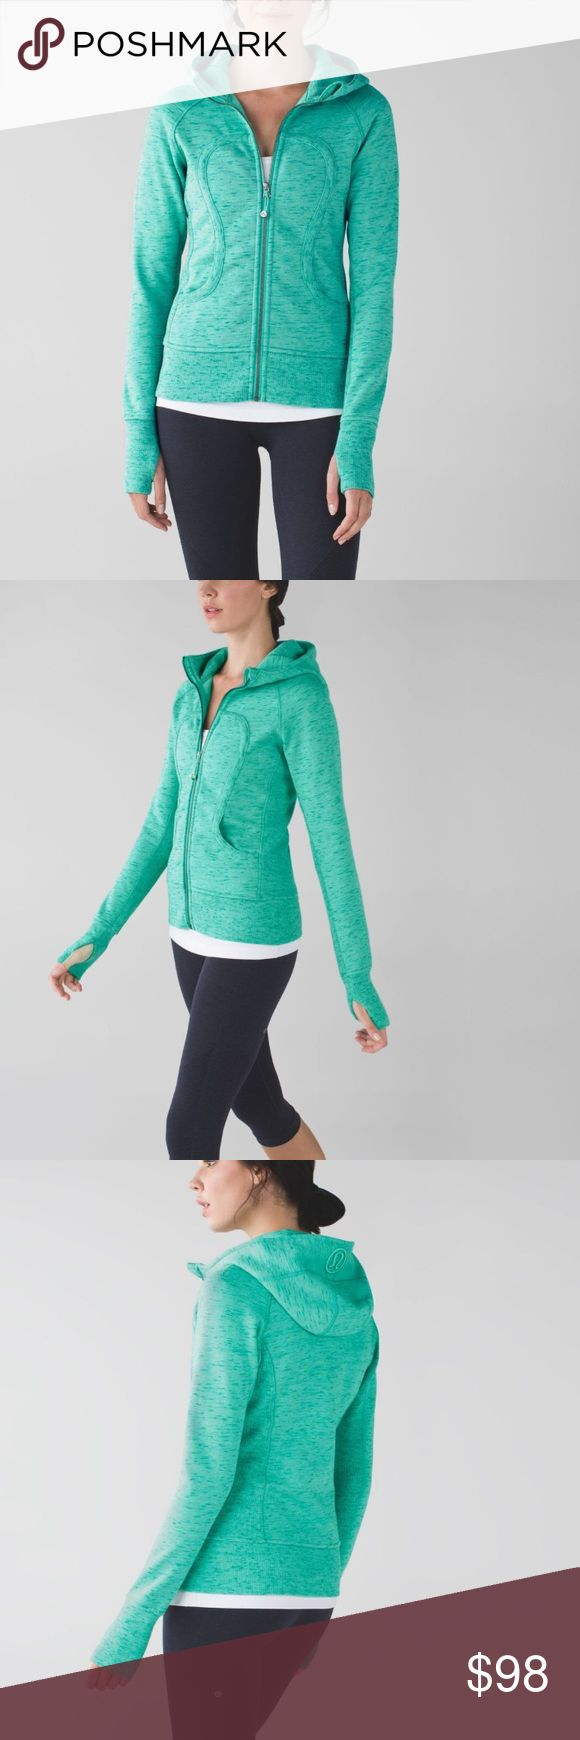 Lululemon scuba hoodie in heathered green In excellent condition with no rips or stains. Lululemon scuba hoodie II in heathered rainforest menthol. This one is sold out and super hard to find! The material is super soft and stretchy, not like the newer stiff scuba hoodies. Thanks for looking.💕 lululemon athletica Tops Sweatshirts & Hoodies